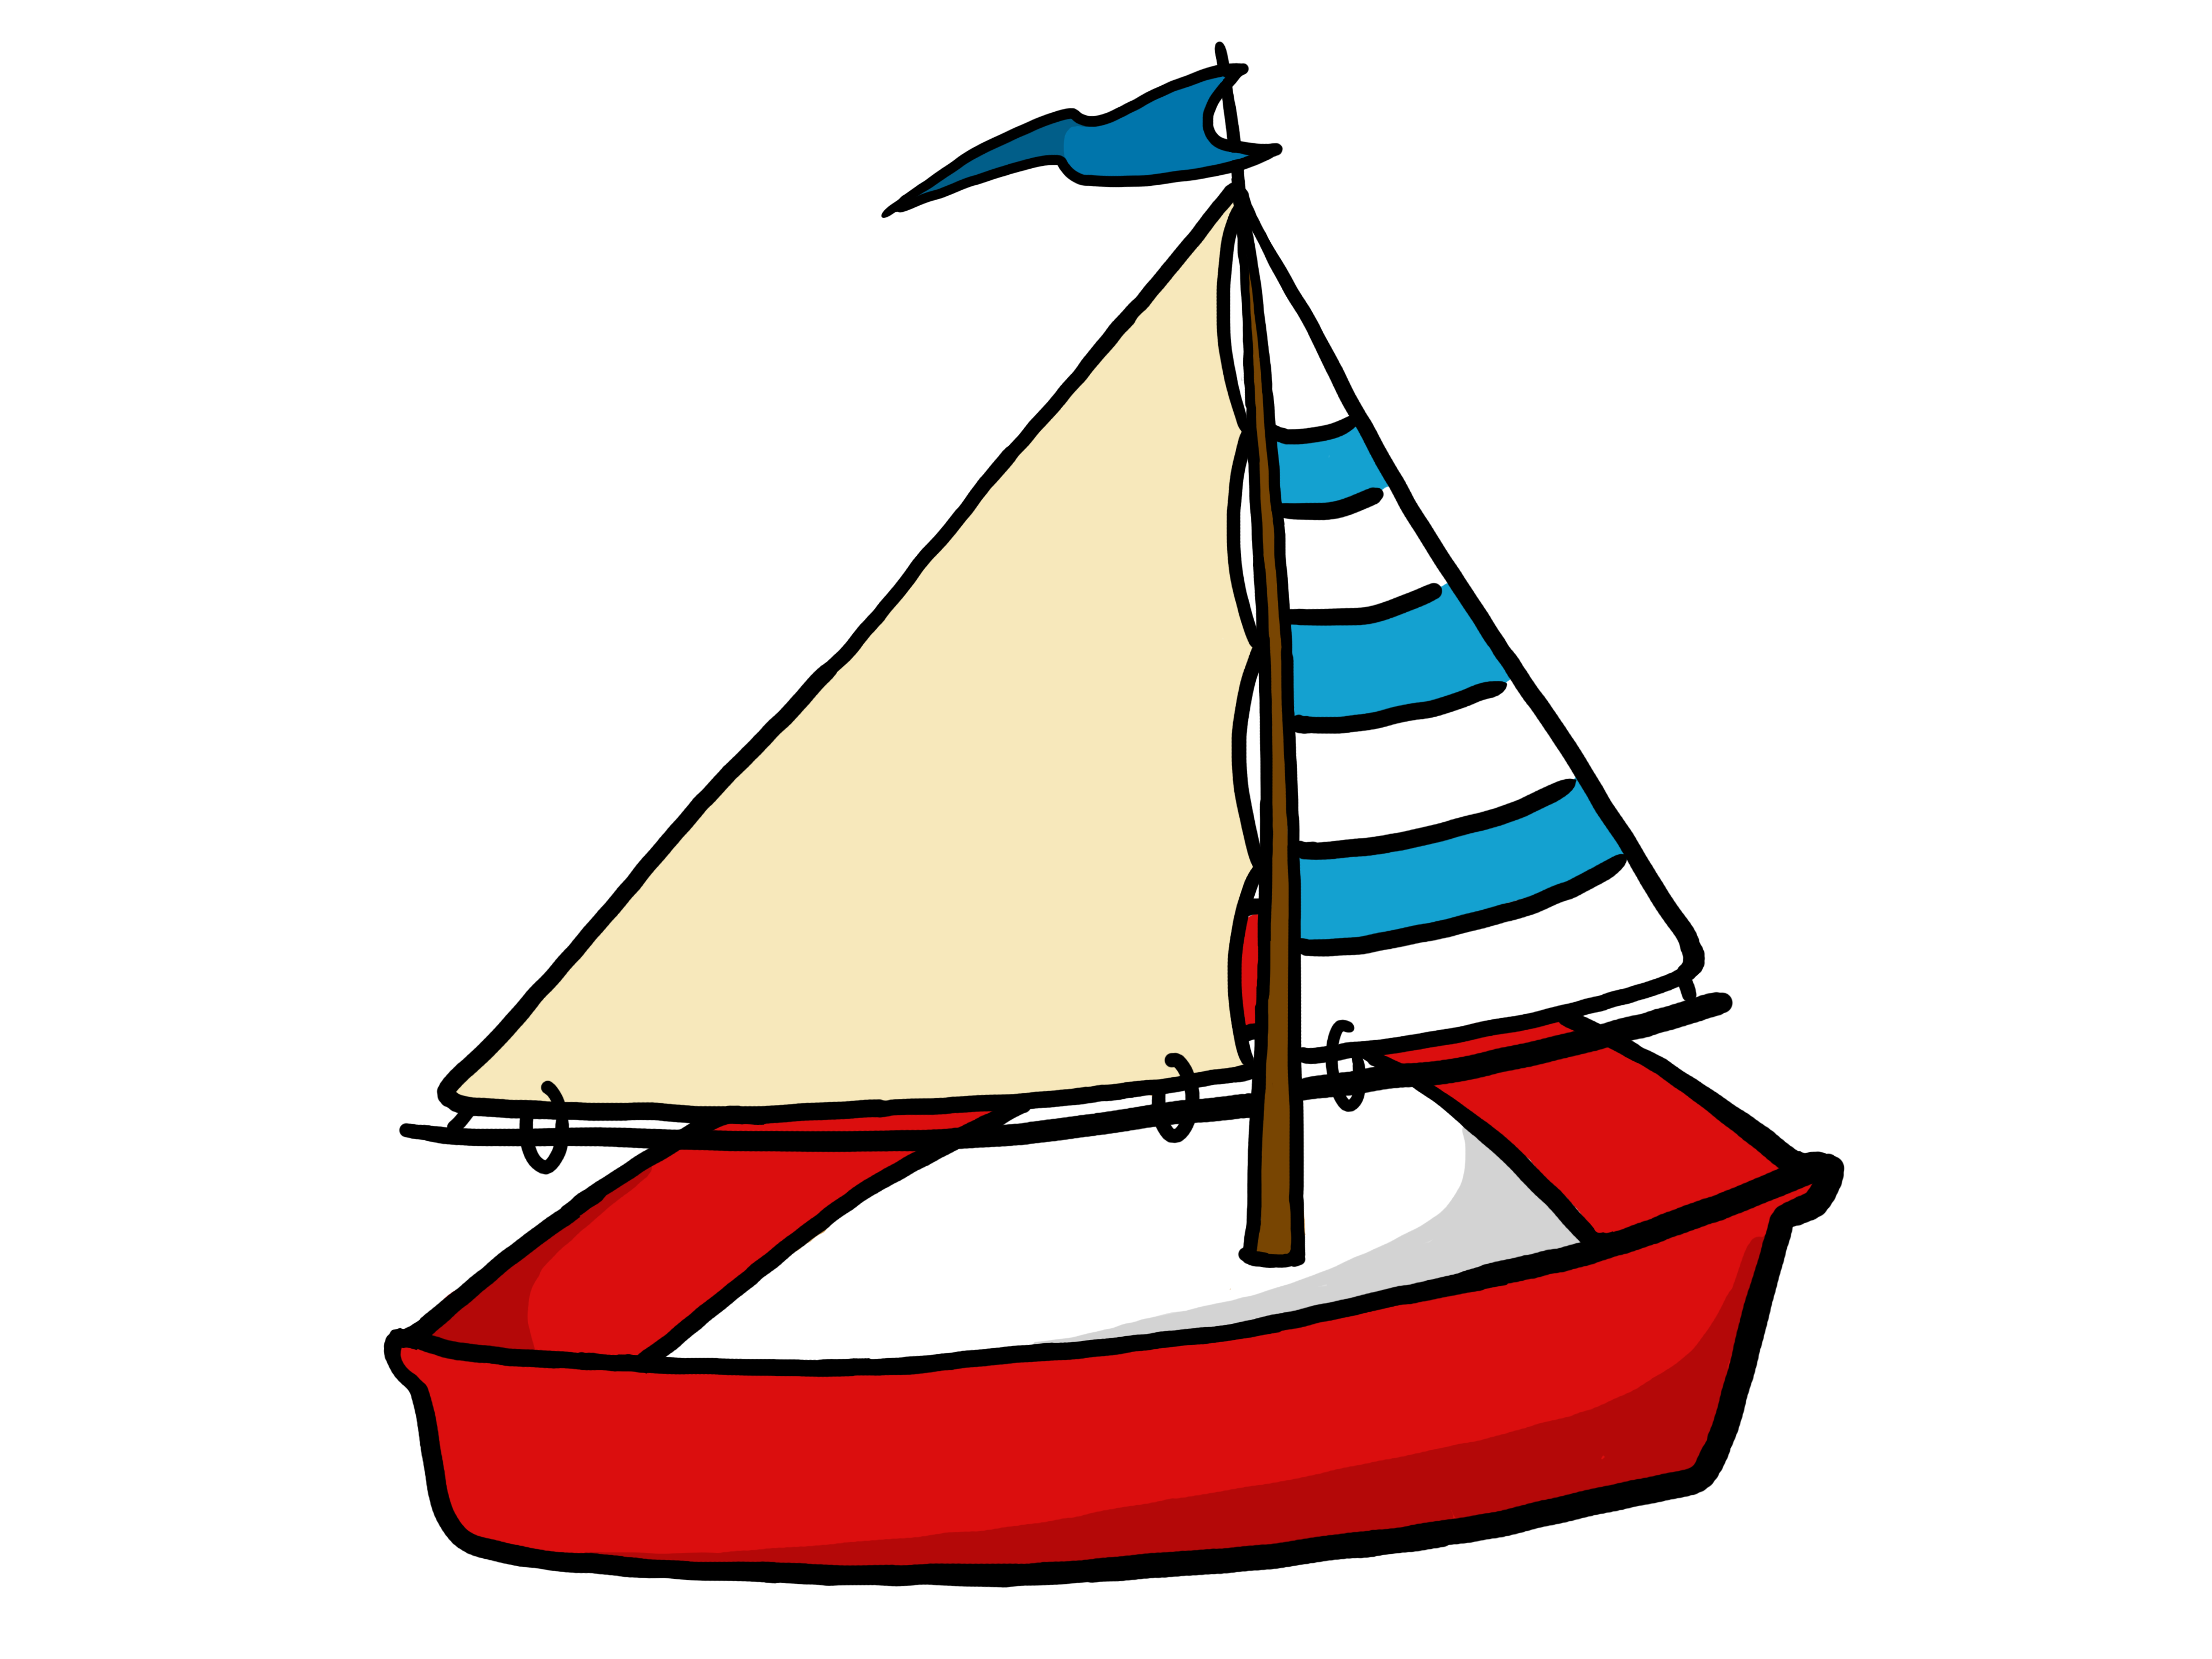 Clipart Panda Free Clipart Images: Toy Boat Clipart